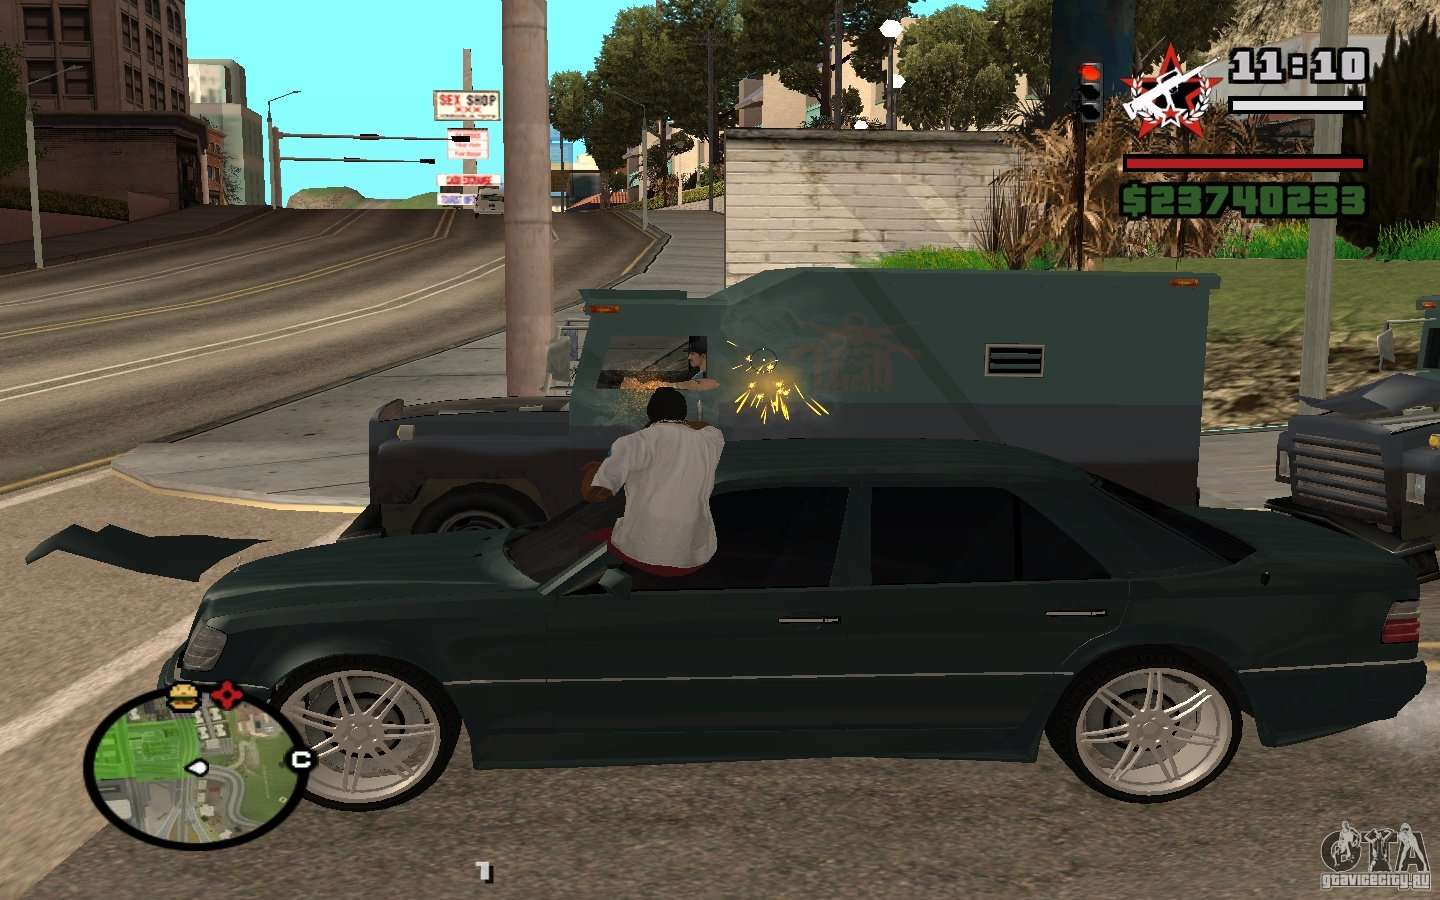 Shoot Out Of The Car In Gta 4 For Gta San Andreas